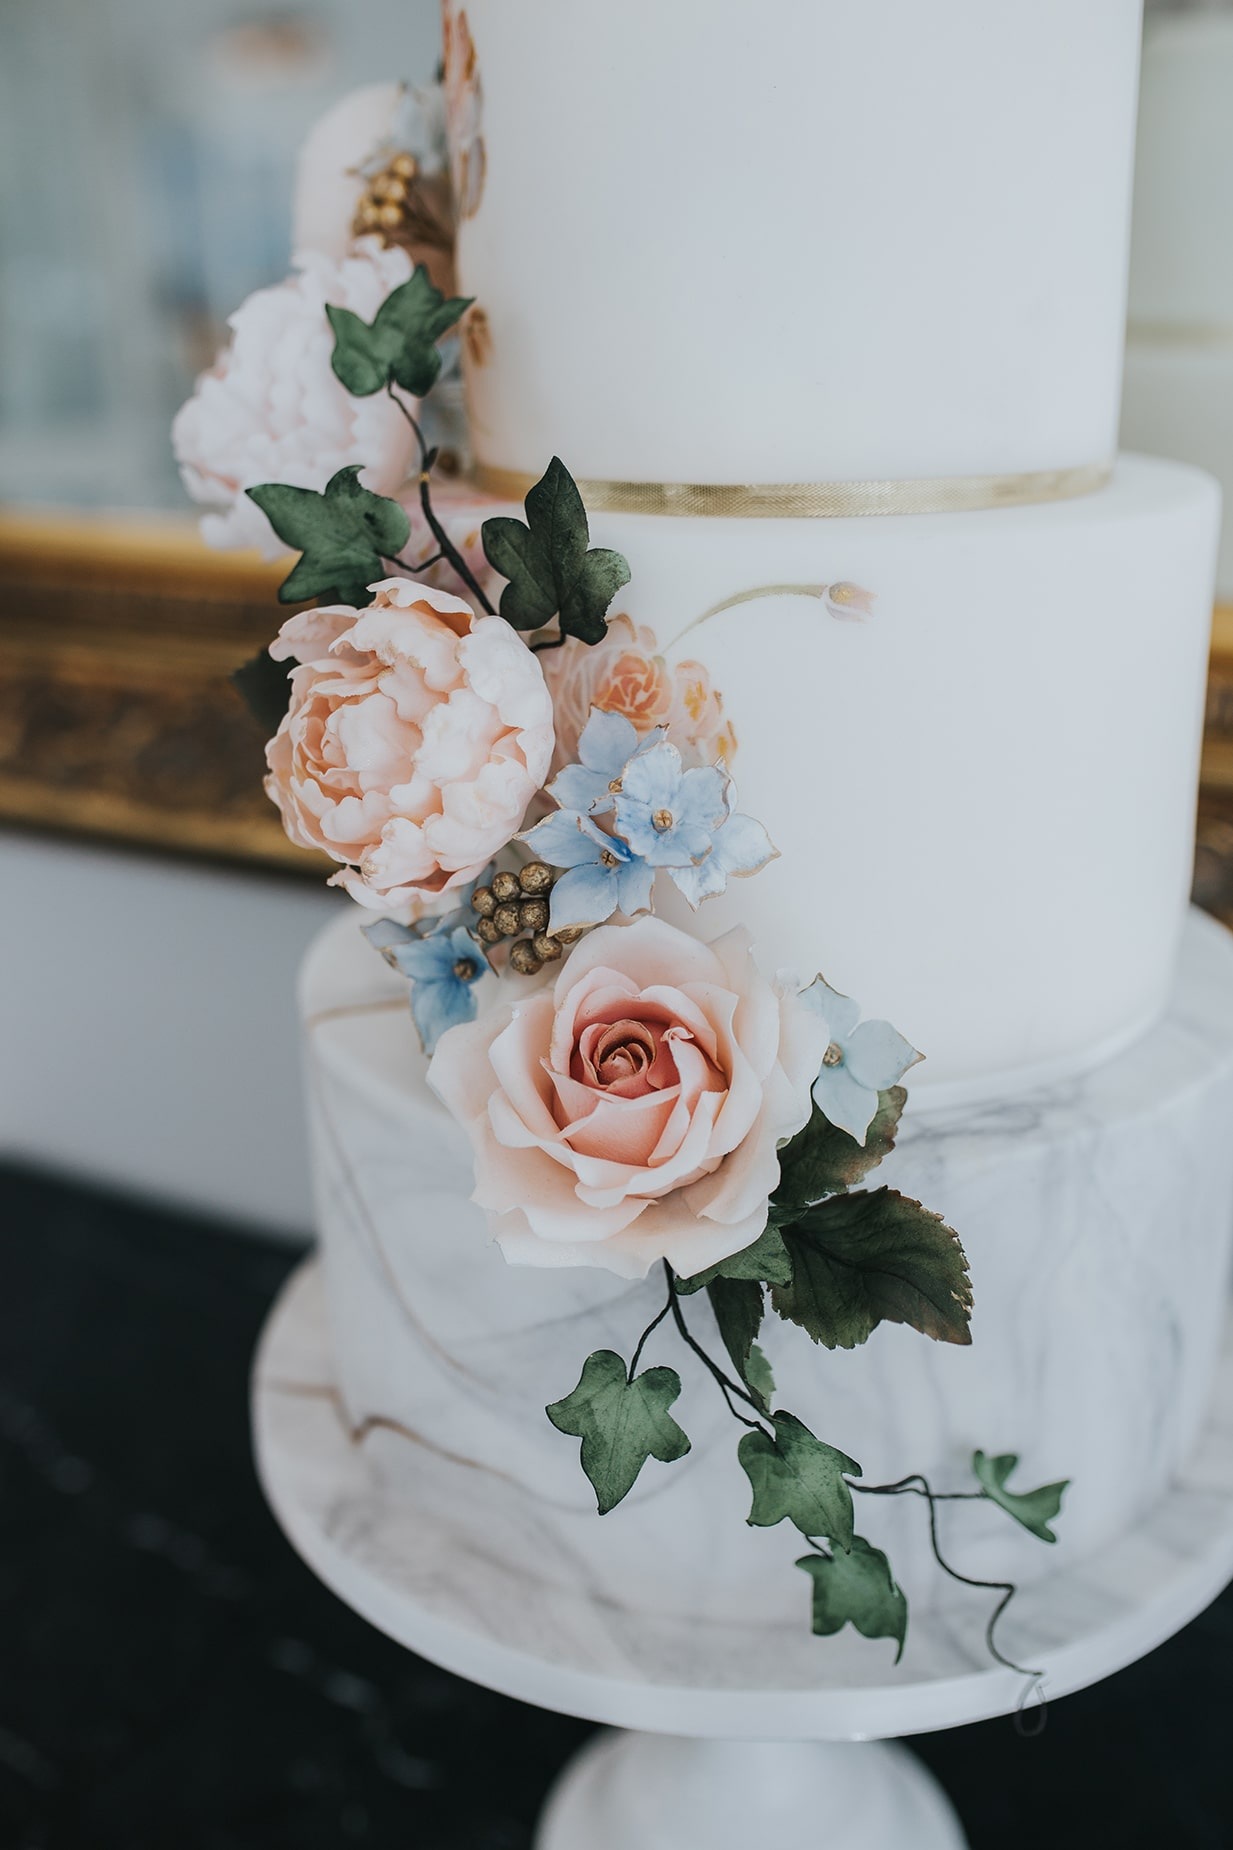 Floral Wedding Cake by McGowan Cakes at a Lemore Manor Wedding in Hereford